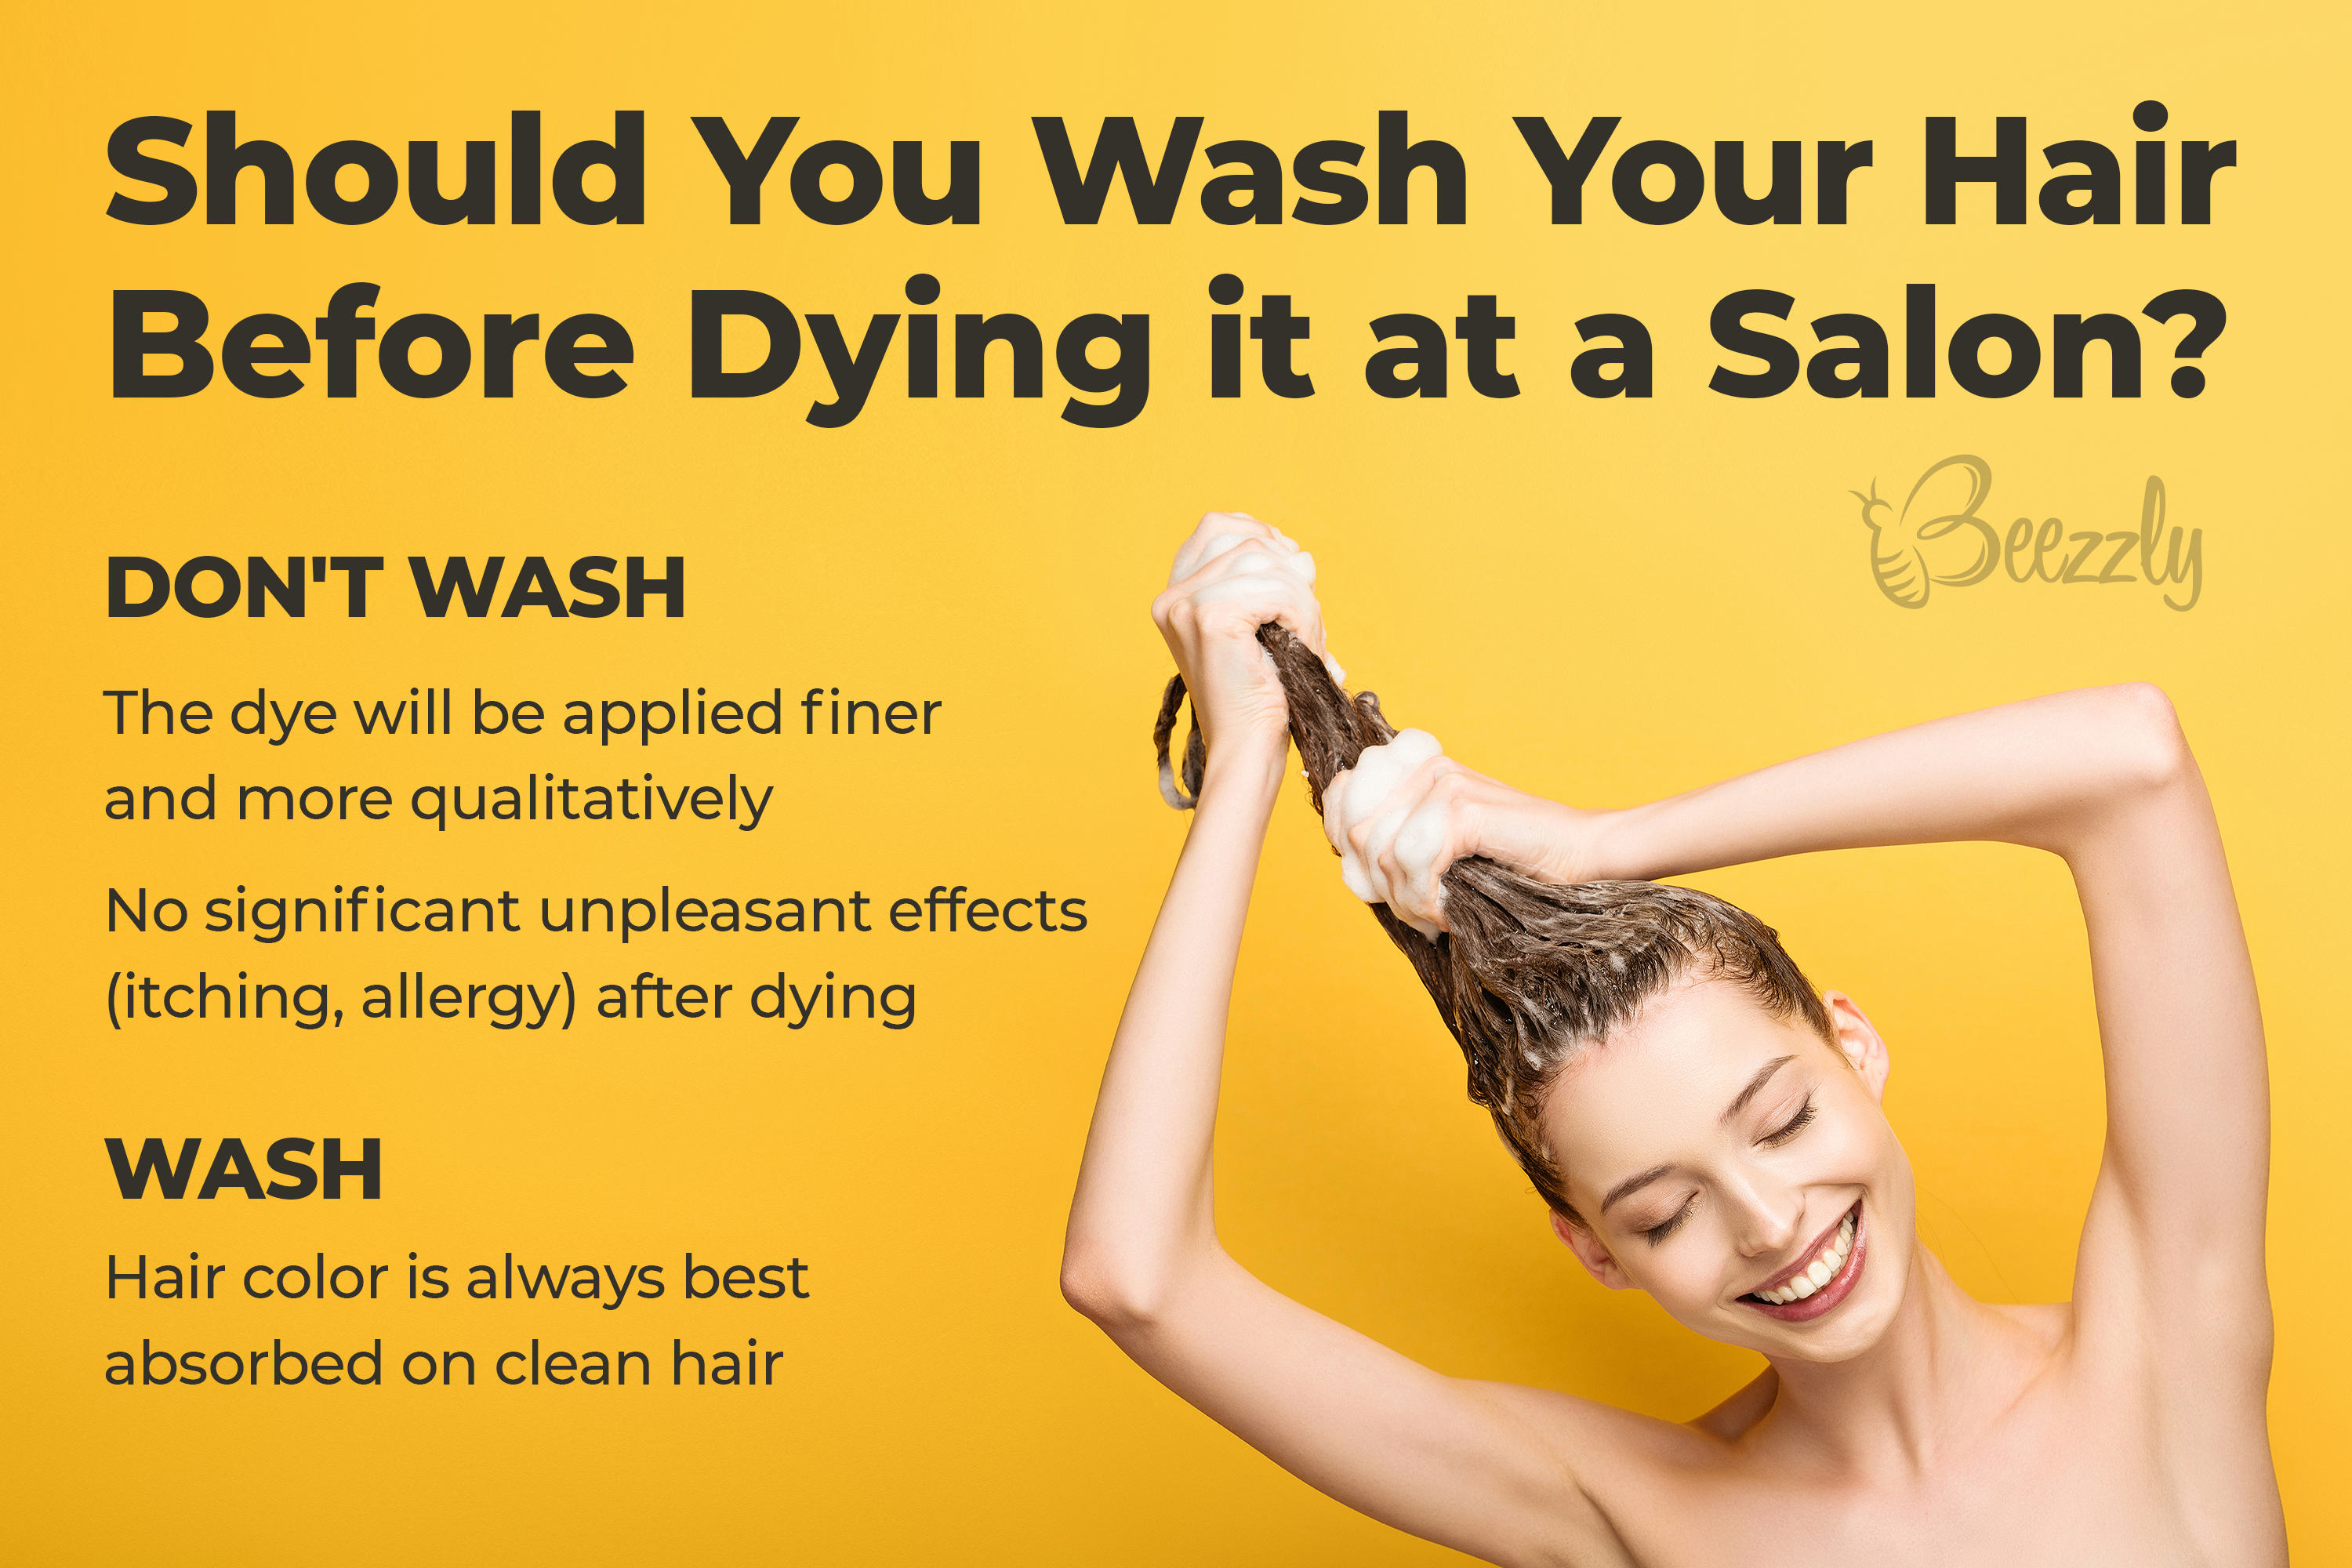 should you wash your hair before dying it at a salon